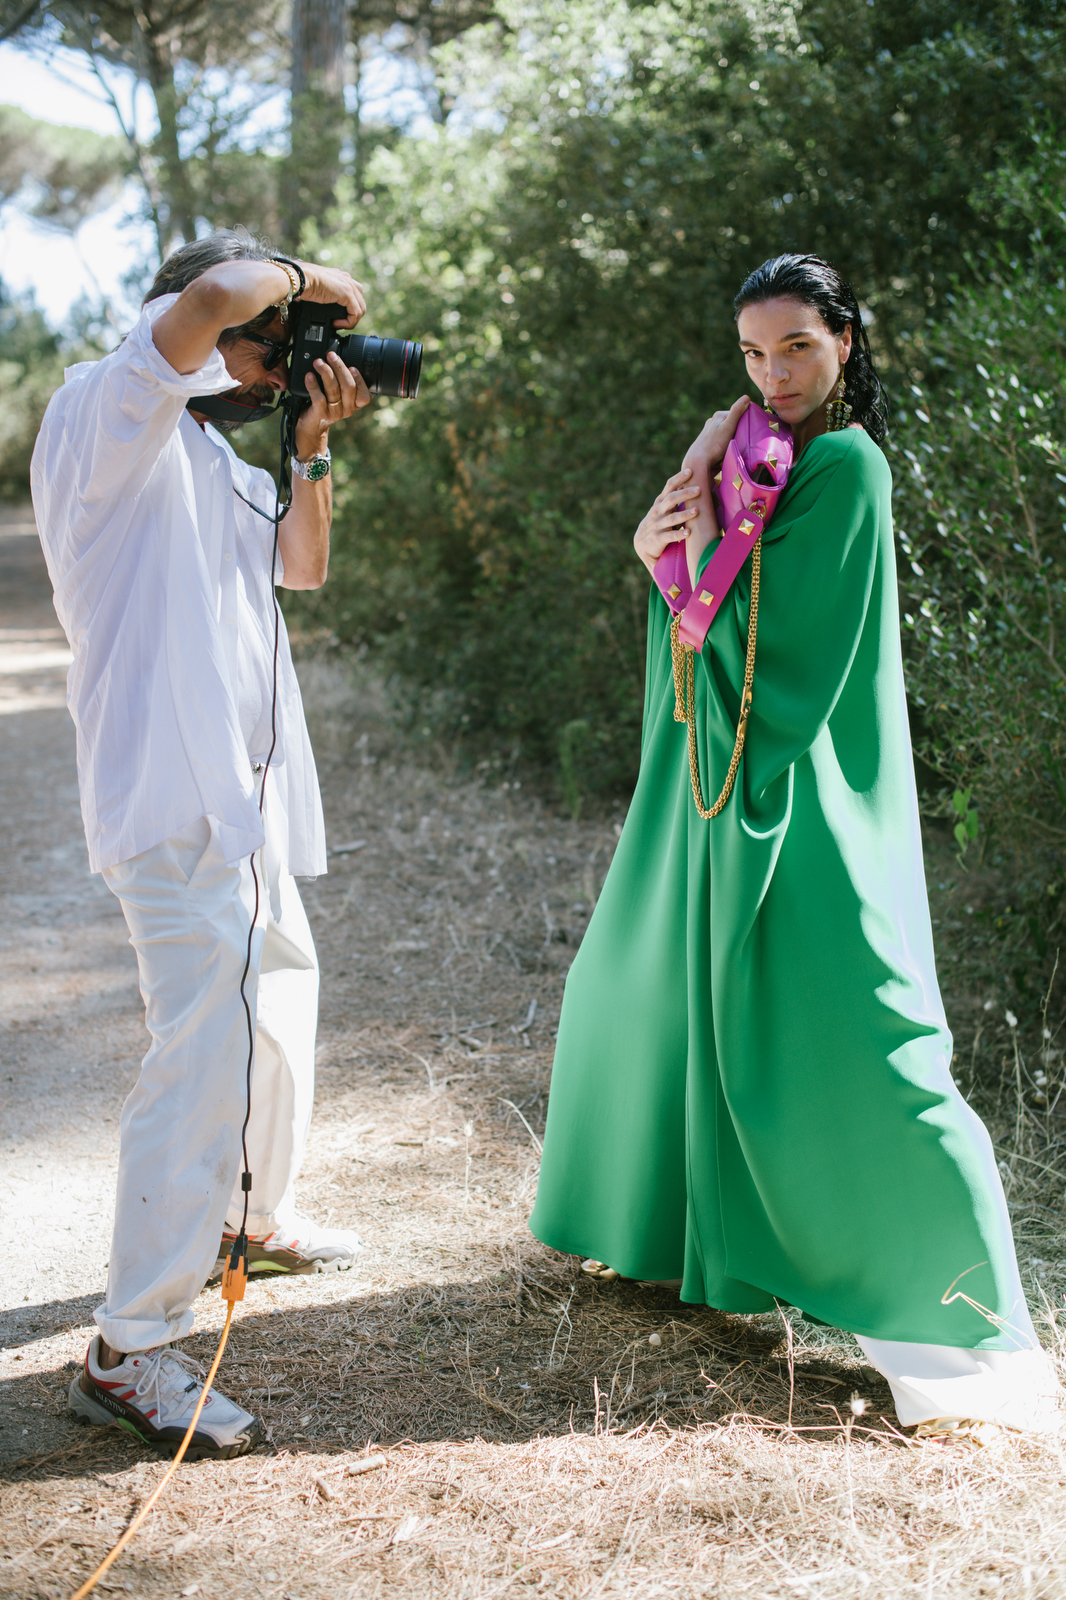 Pierpaolo Piccioli photographs Mariacarla Boscono wearing a look from his upcoming resort collection.